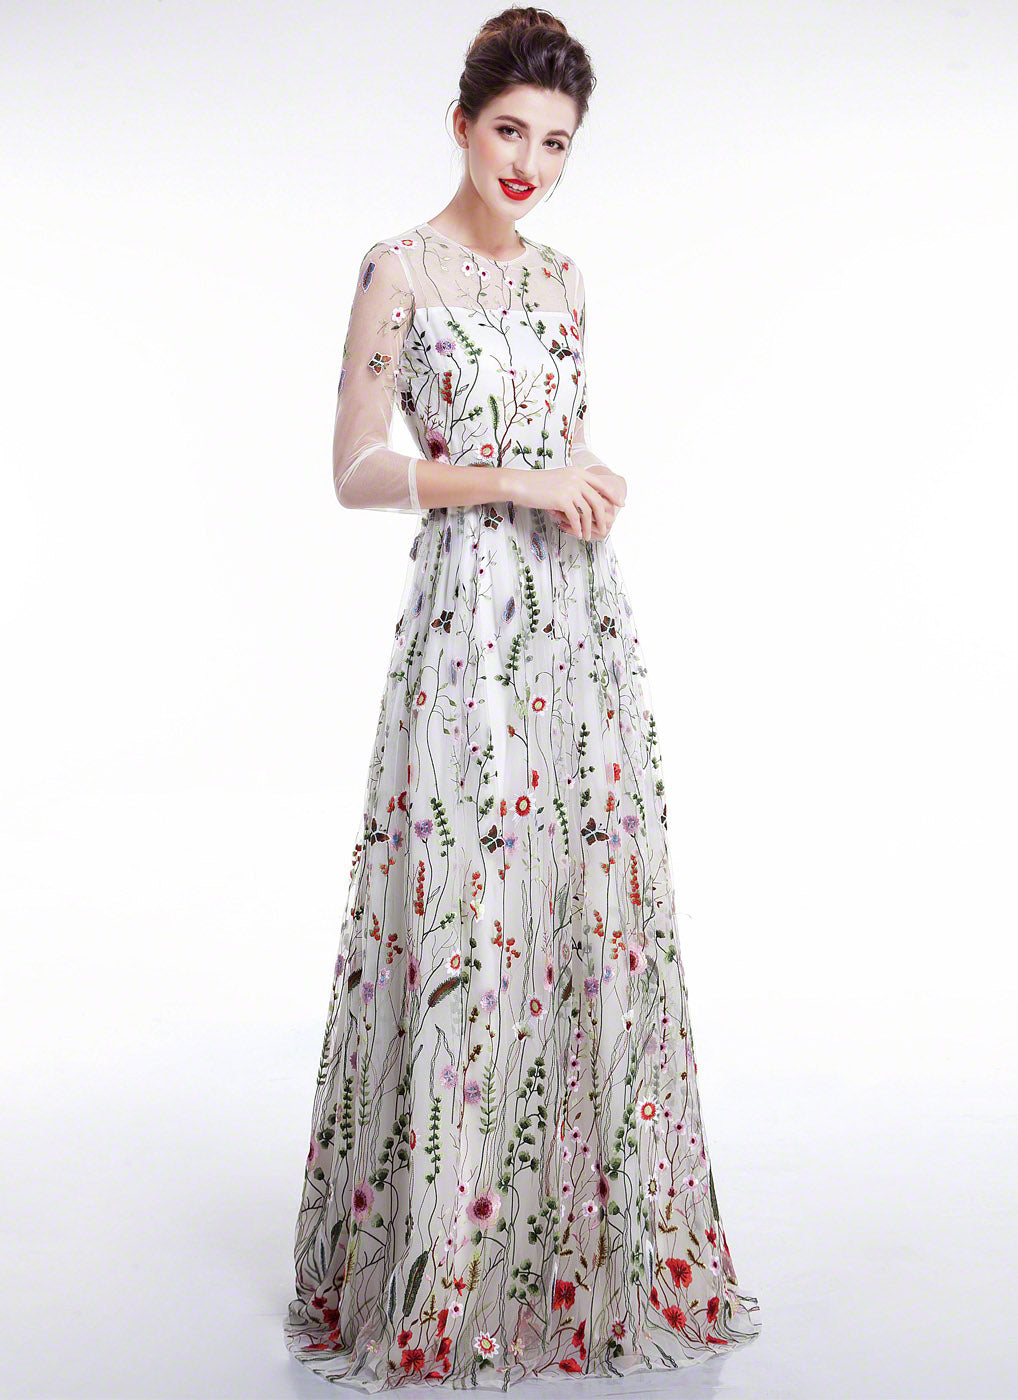 White Tulle Colorful Floral Embroidery Whimsical Maxi Evening Dress with Sheer 3/4 Sleeves